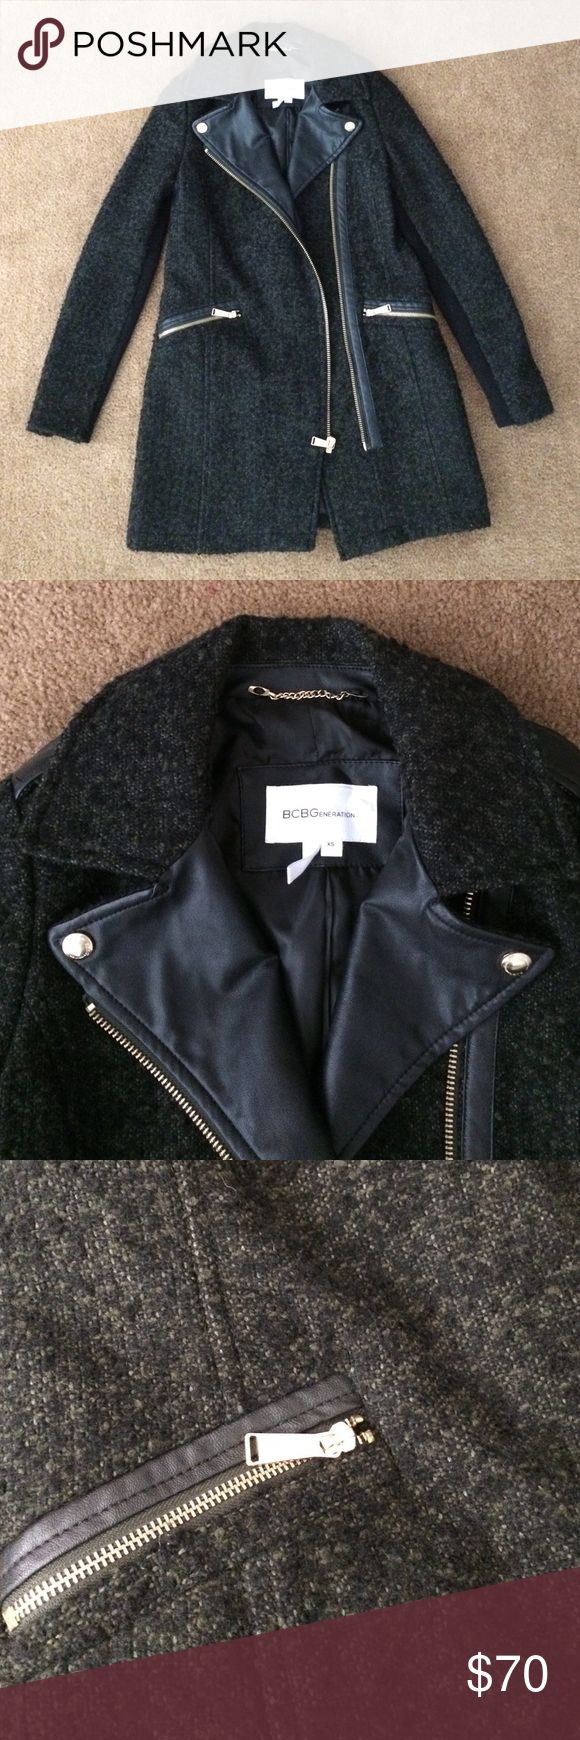 BCBGeneration coat Army green/black speckled coat. Gold hardware/zippers. Faux leather trim. Ribbed sleeves. Excellent condition. BCBGeneration Jackets & Coats Pea Coats